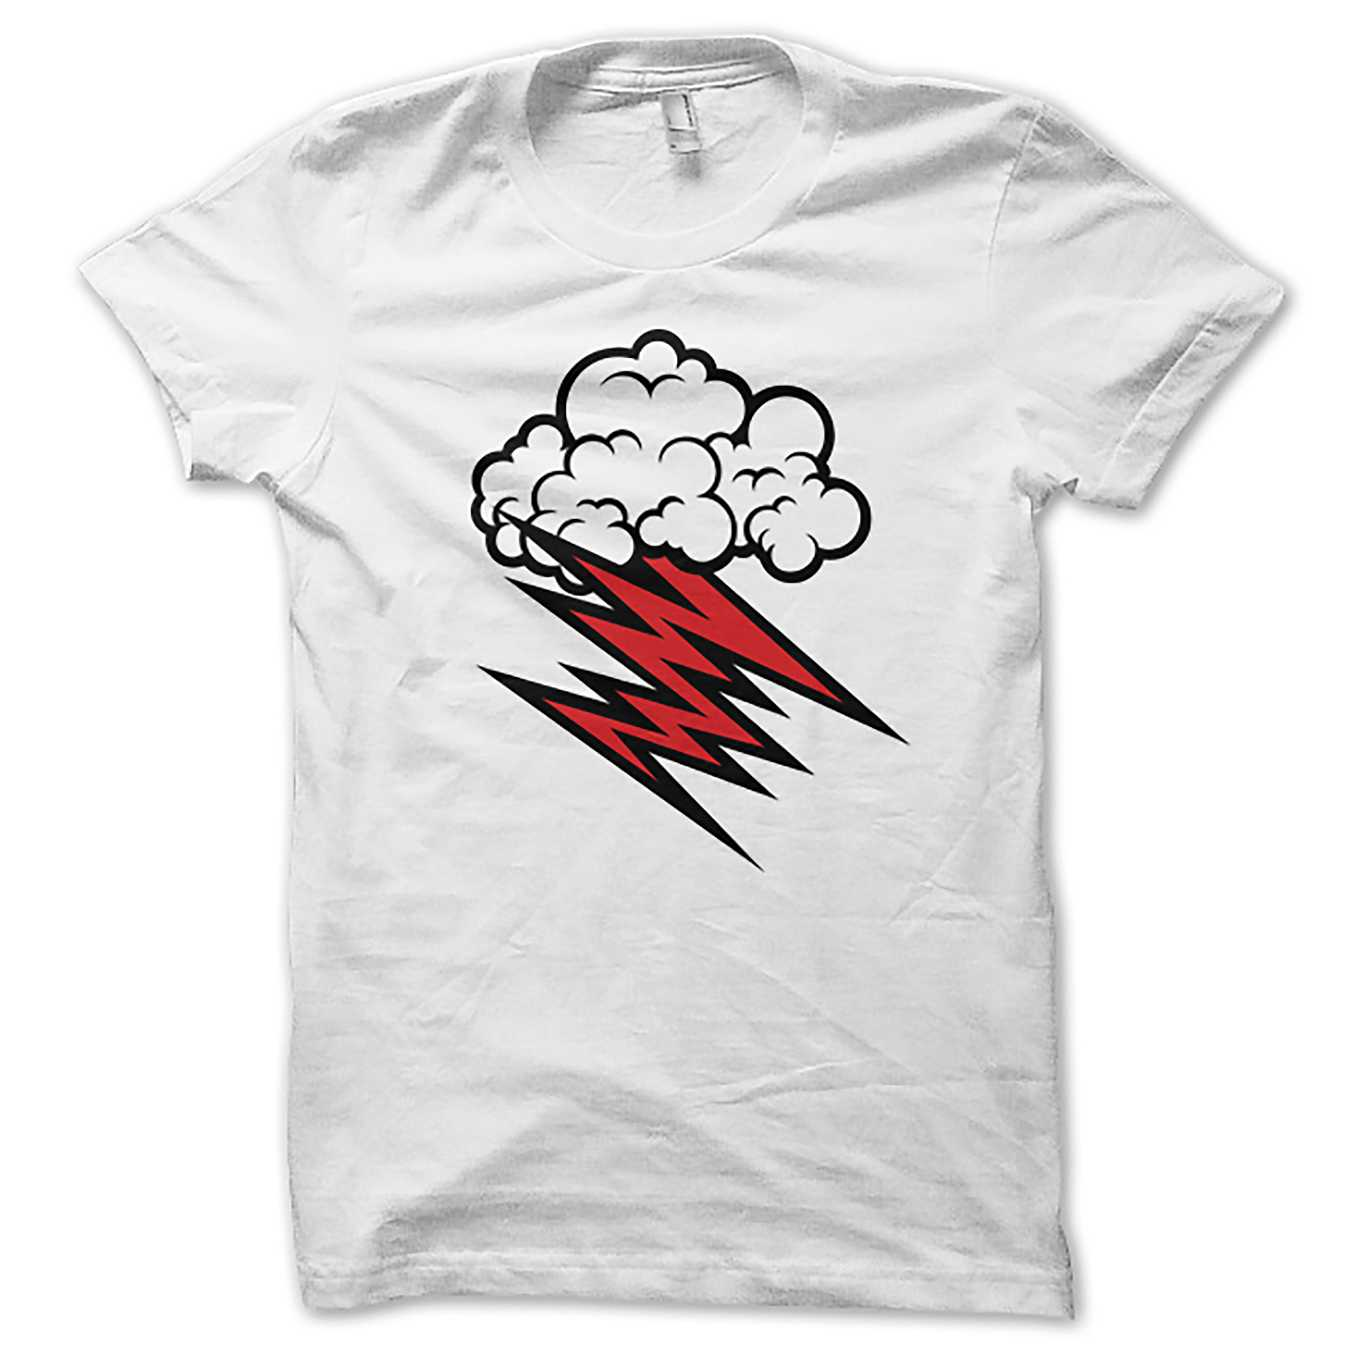 The Hellacopters Grace Cloud White T-Shirt